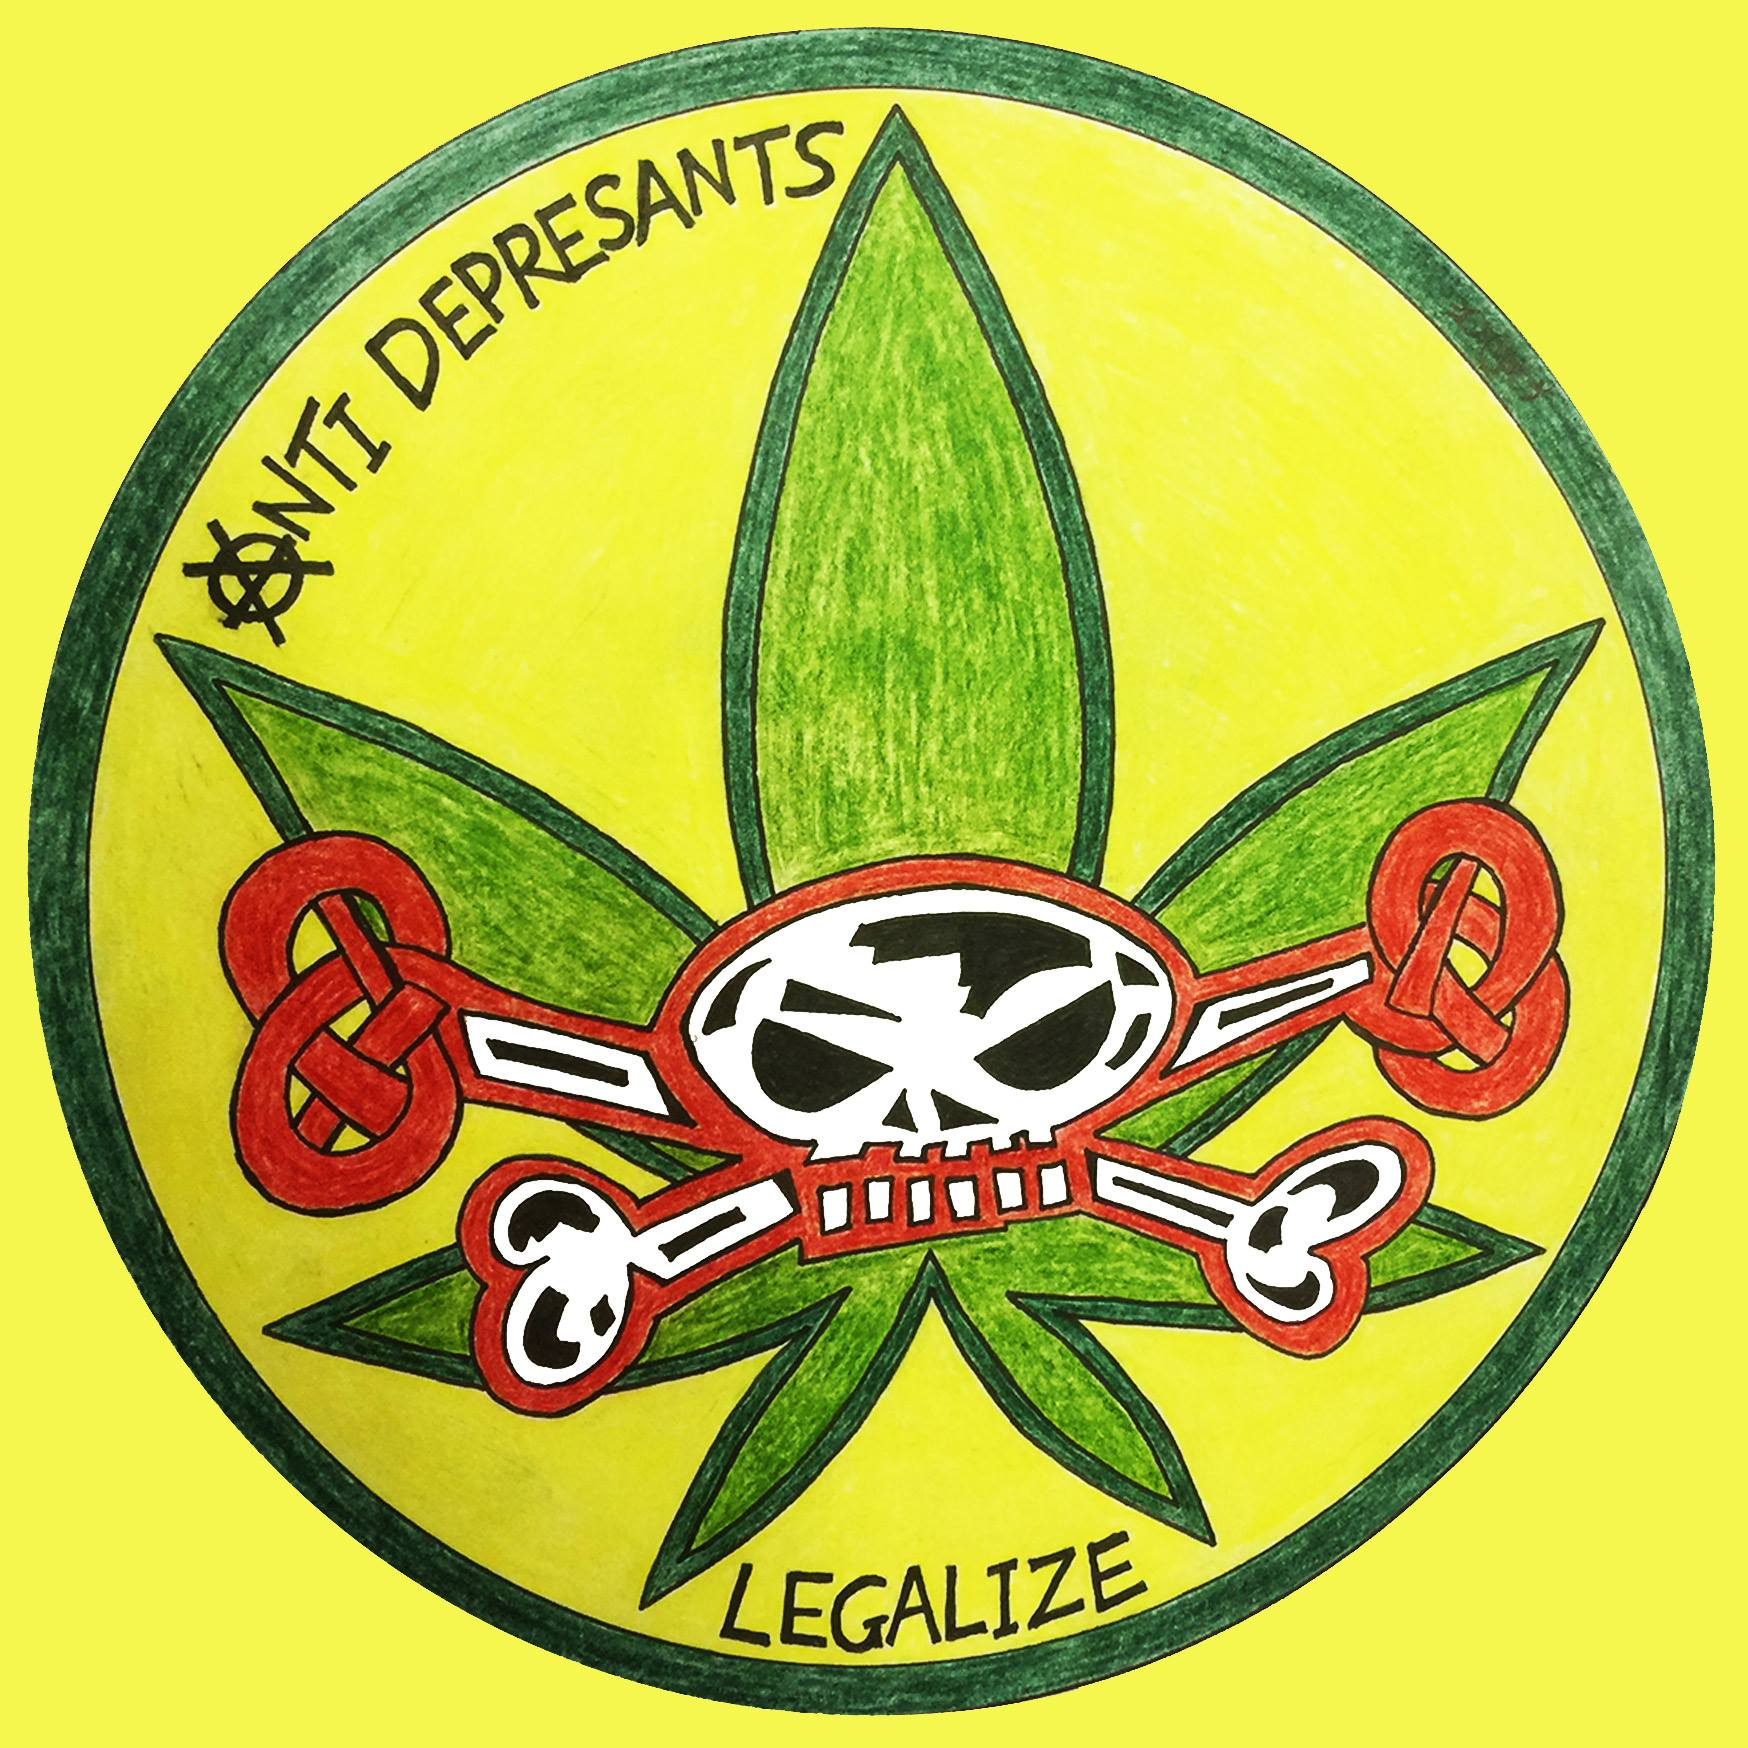 Anti Depresants - Legalize